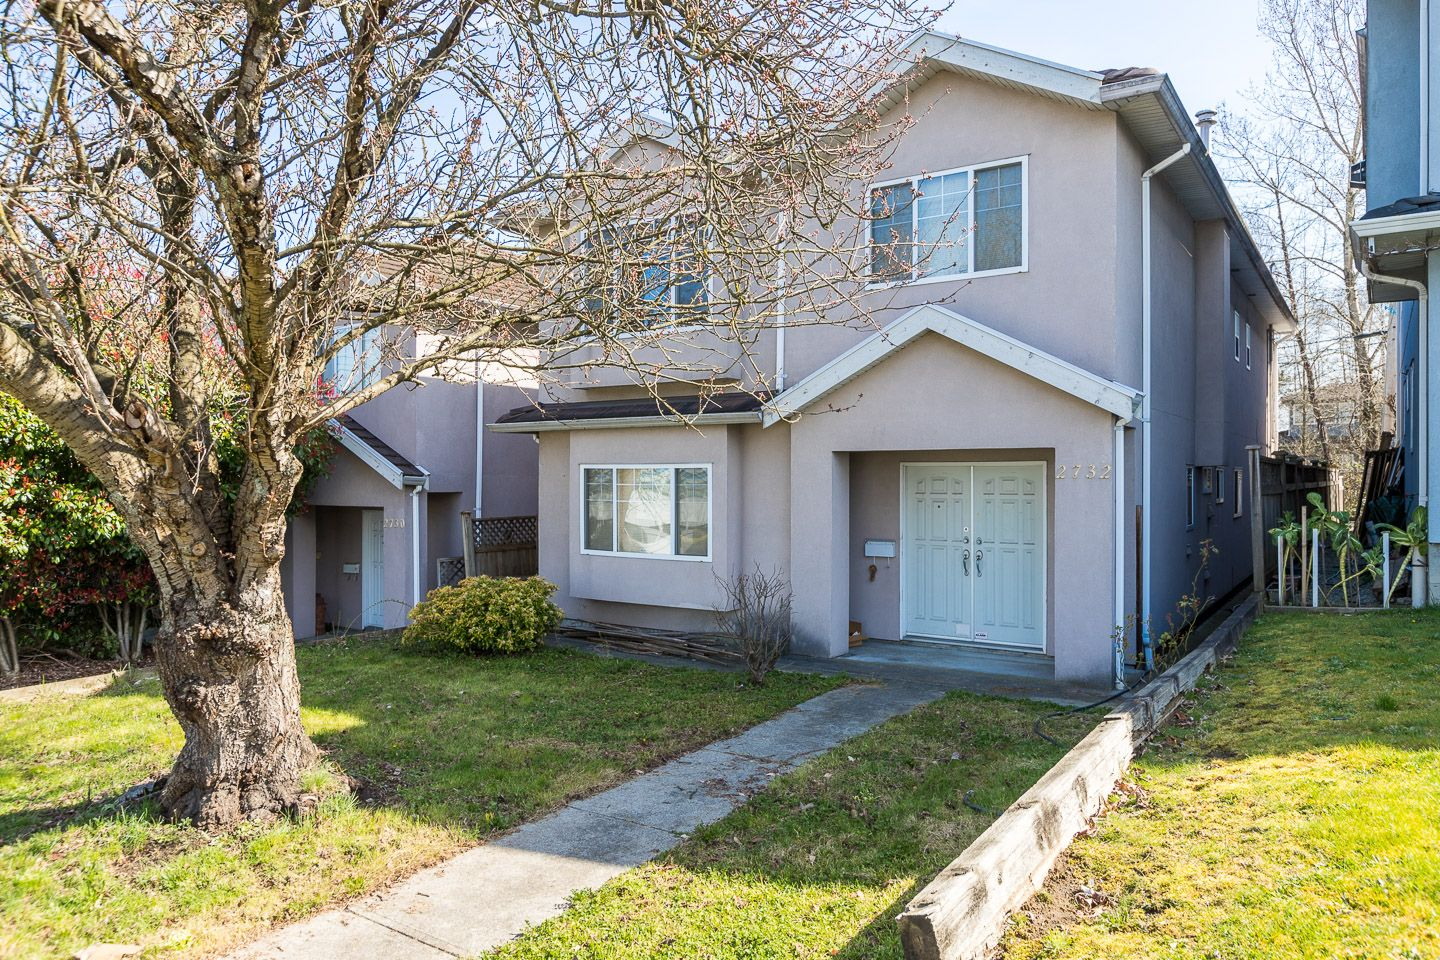 Main Photo: 2732 BOUNDARY RD in BURNABY: Central BN House for sale (Burnaby North)  : MLS®# R2559492